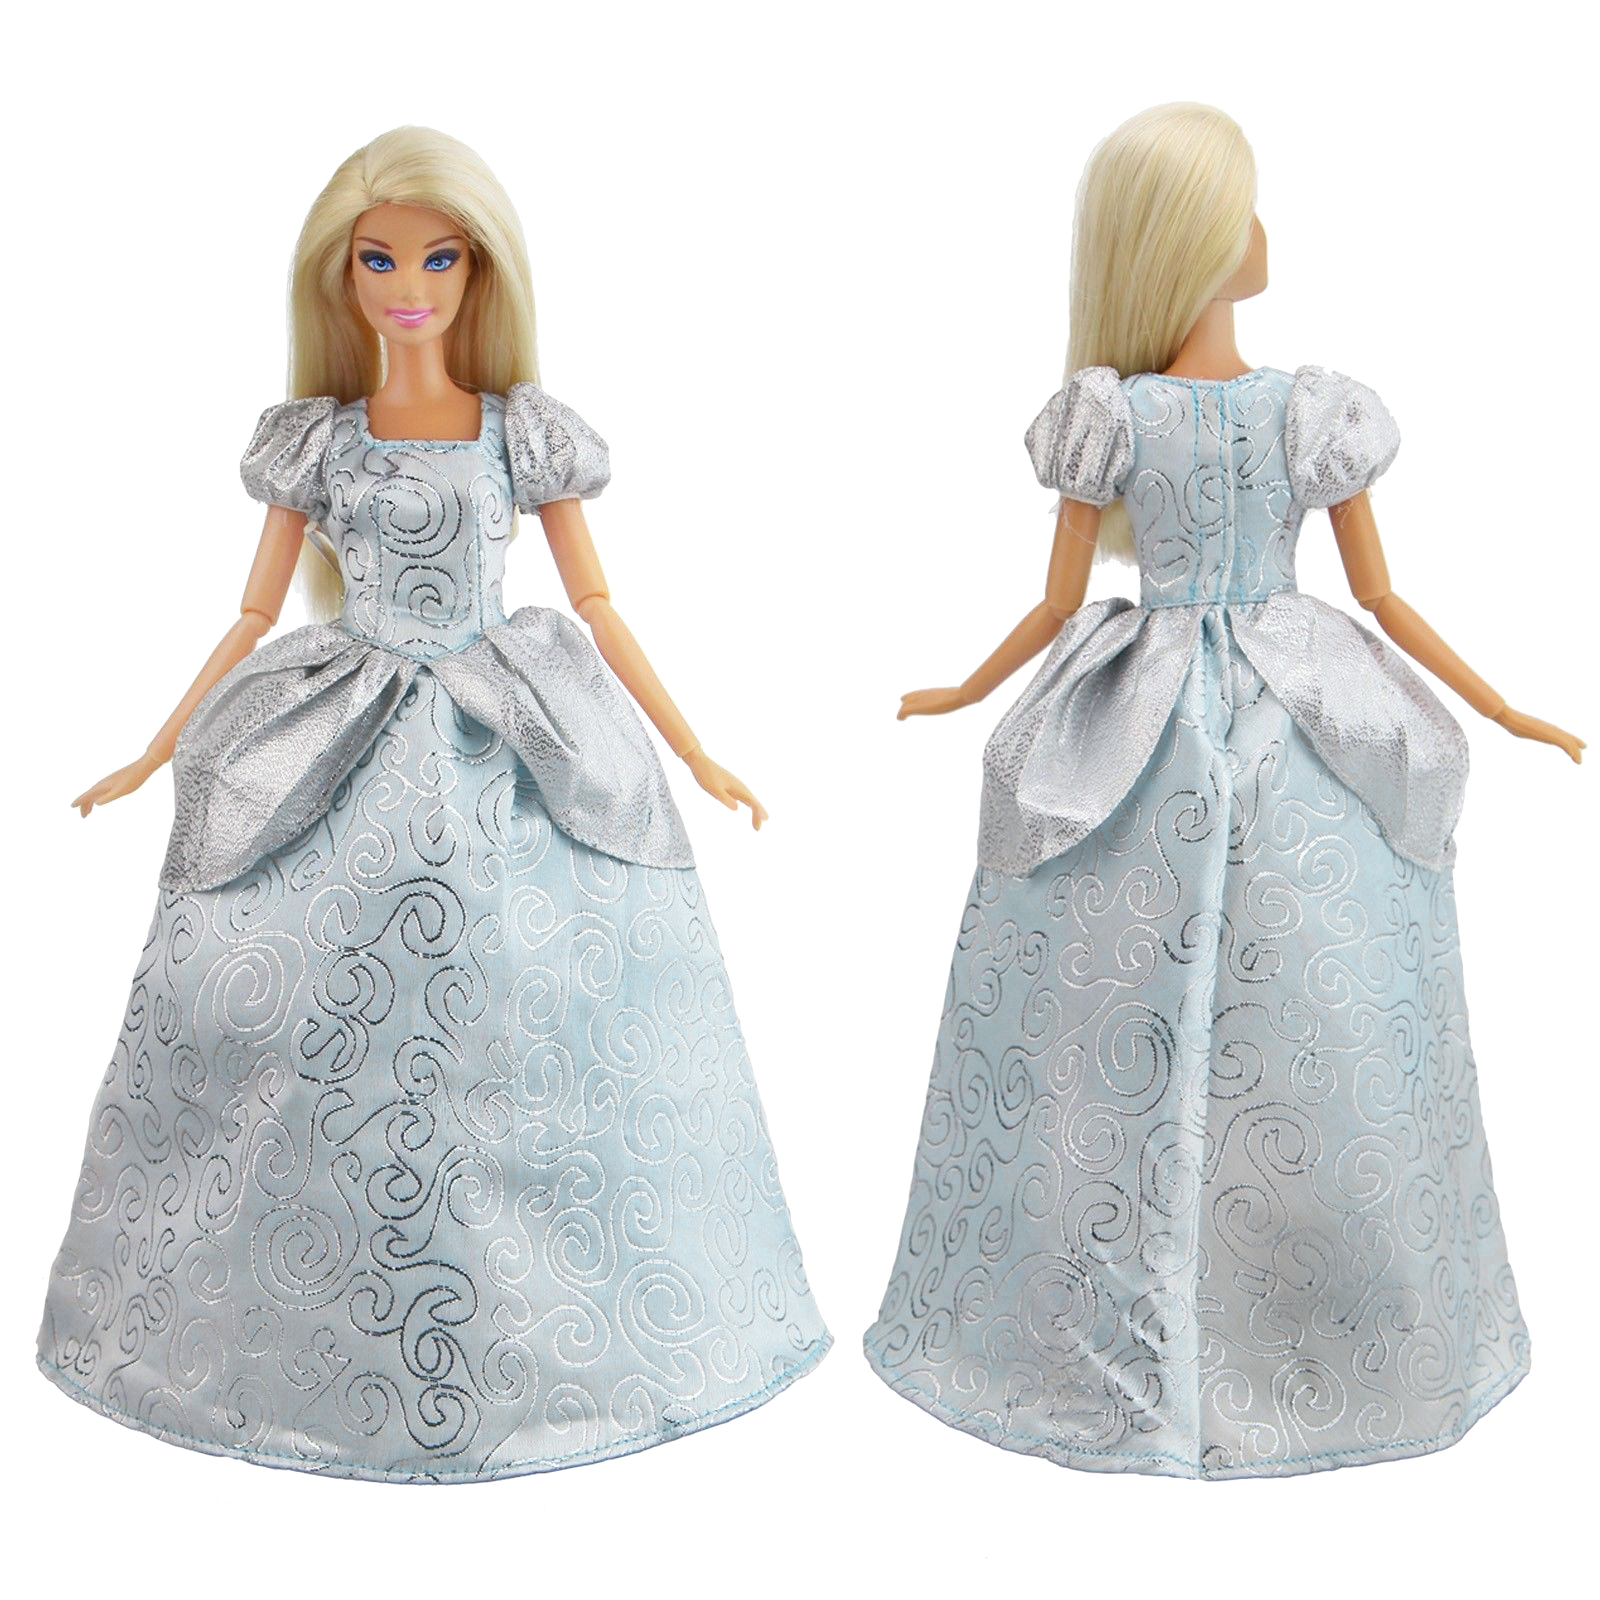 A Silver Sequined Ball Gown Made to Fit the Barbie Doll